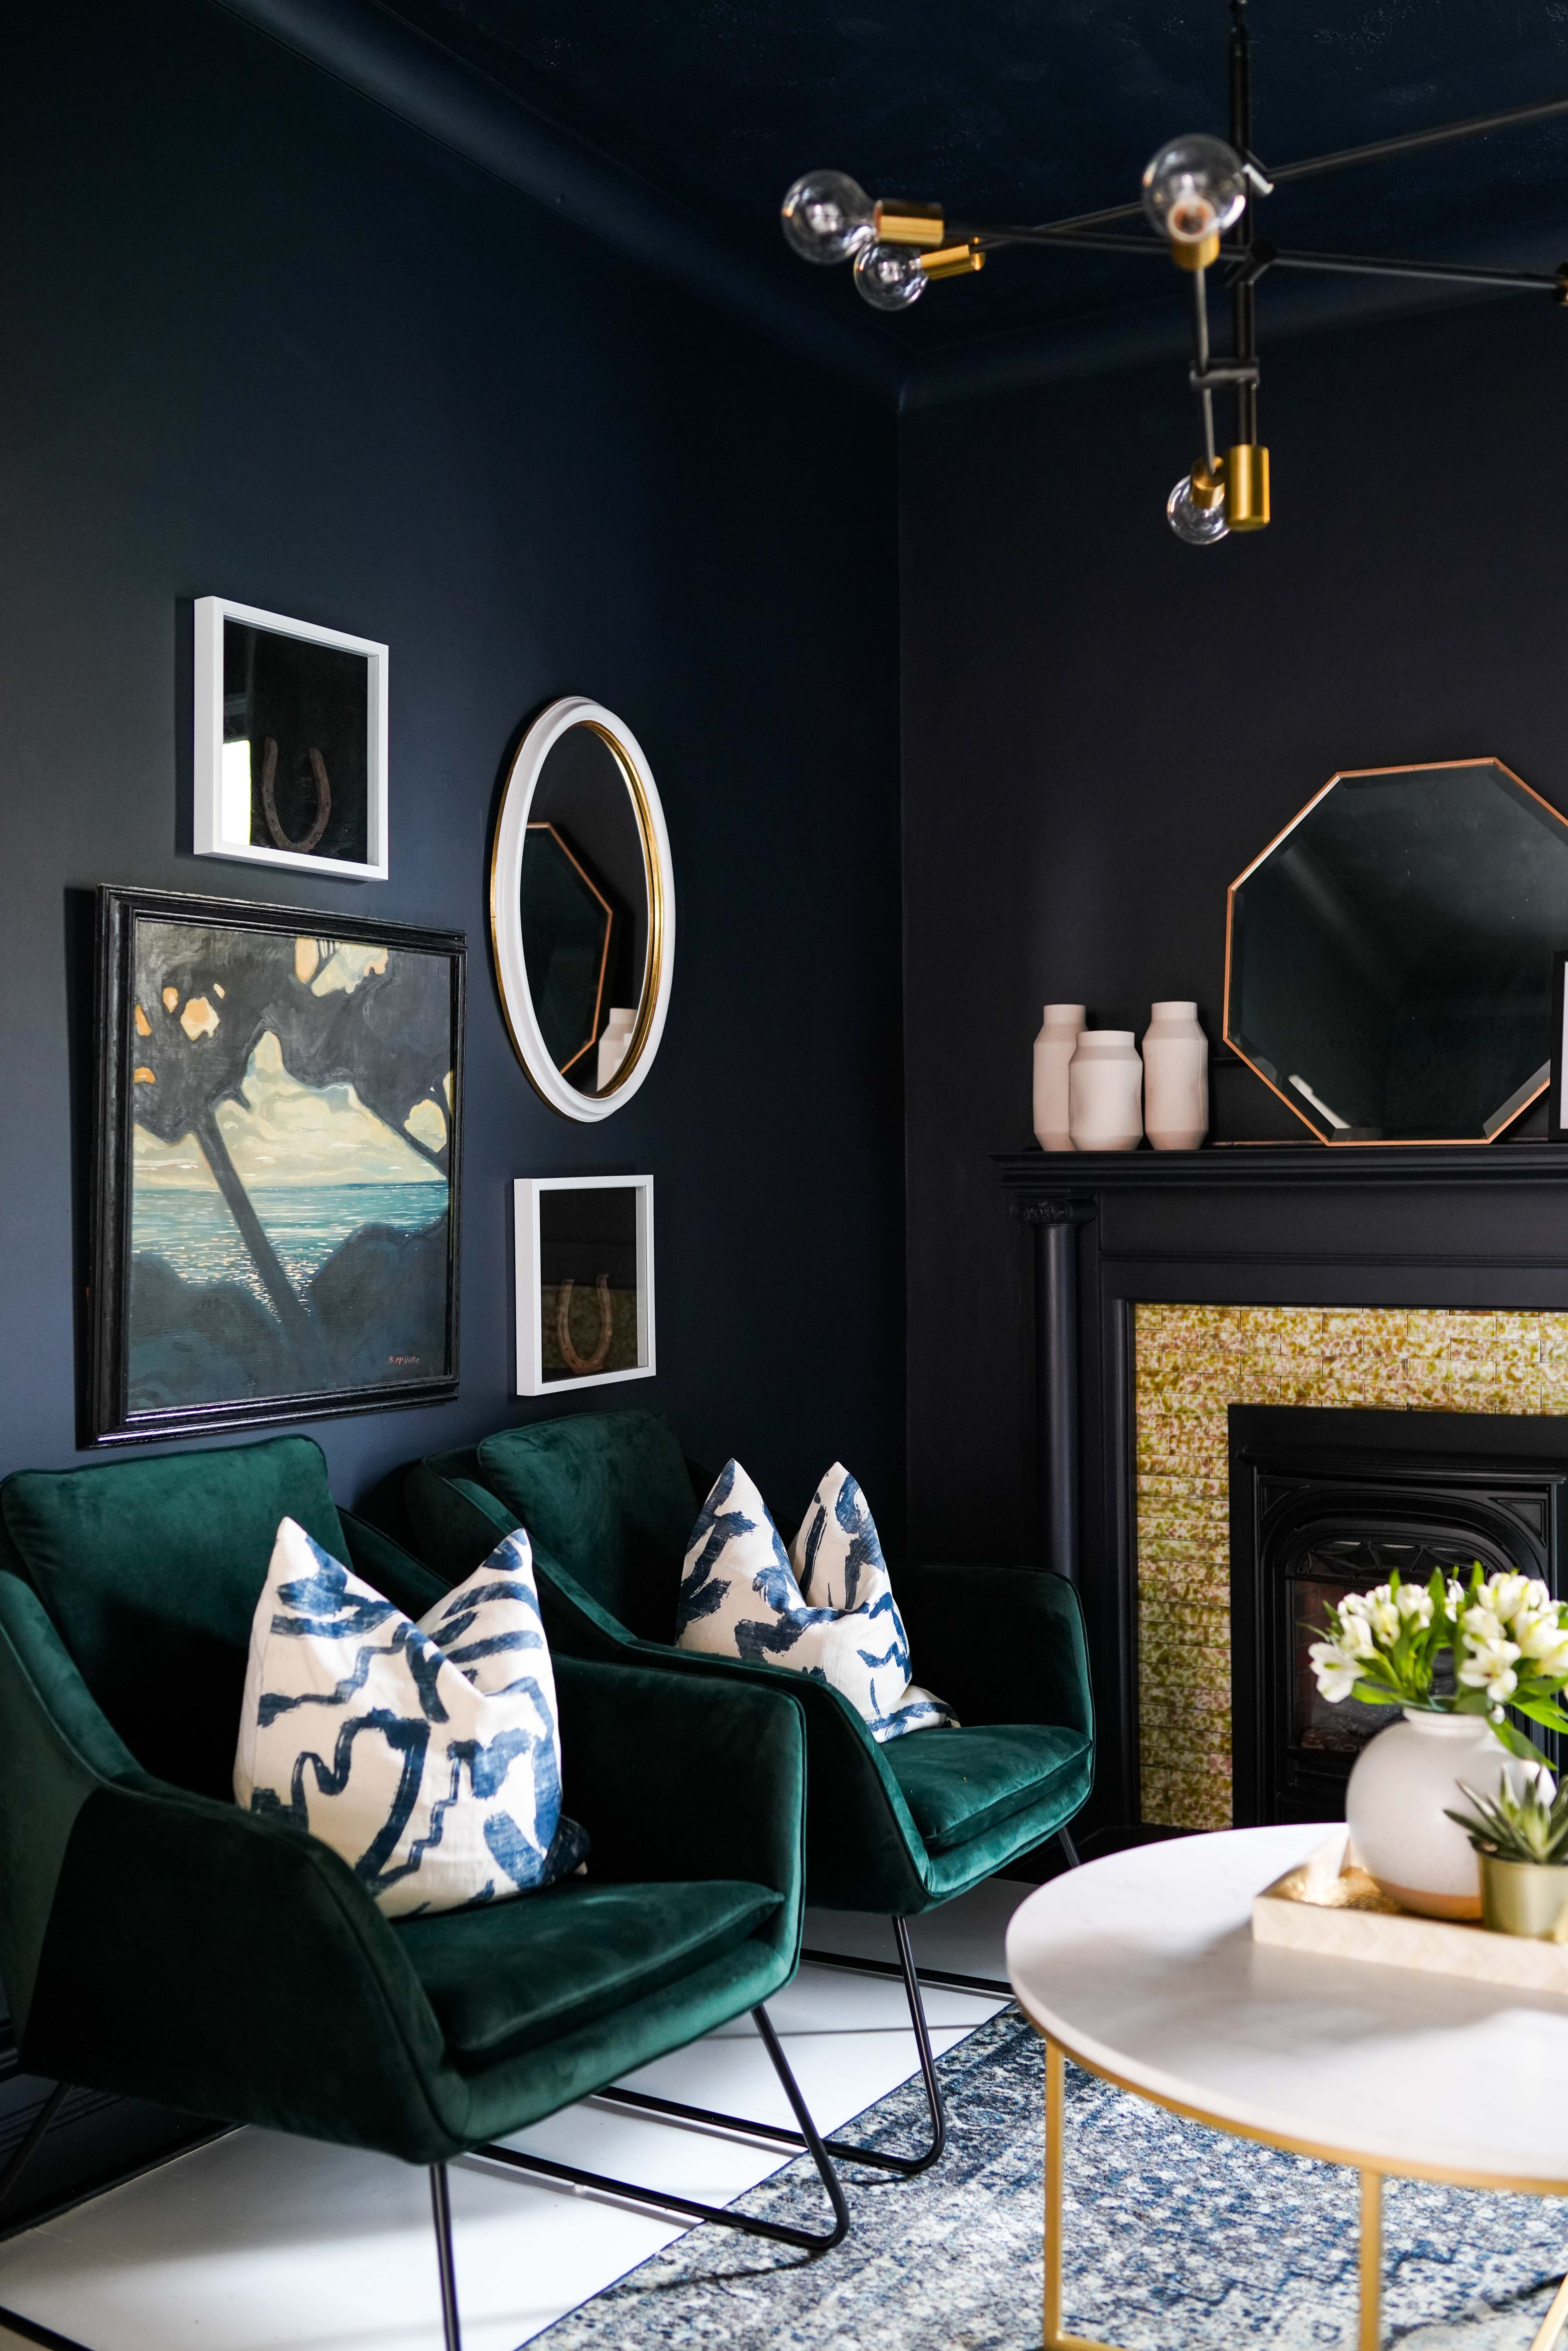 Dark Blue Walls Green Velvet Chairs Gallery Wall Make For A